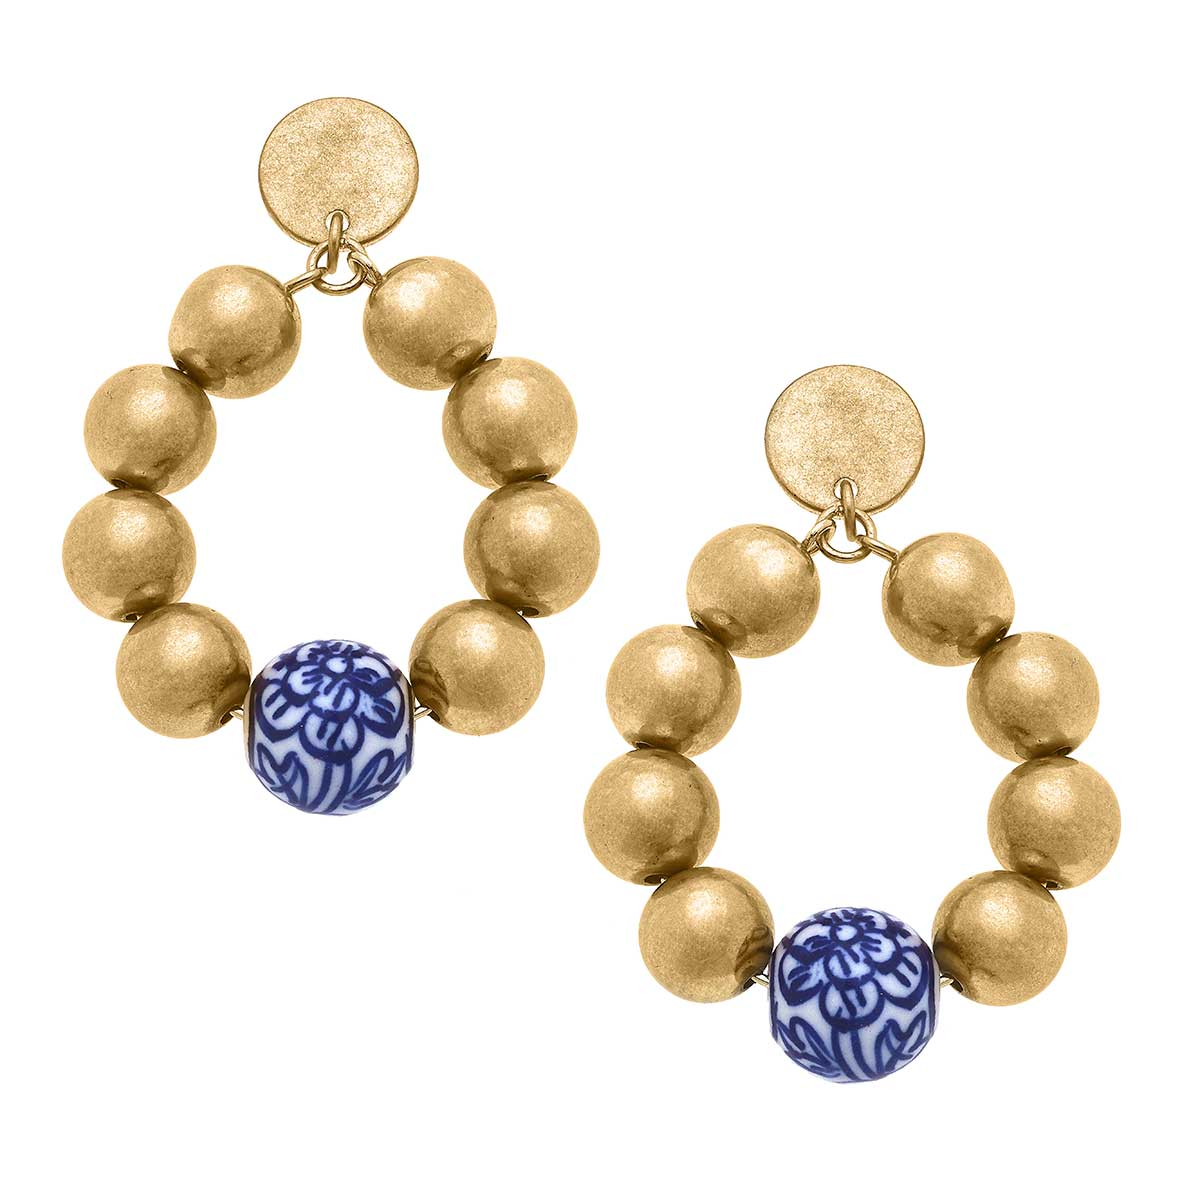 Paloma Chinoiserie & Ball Bead Teardrop Earrings in Blue & White